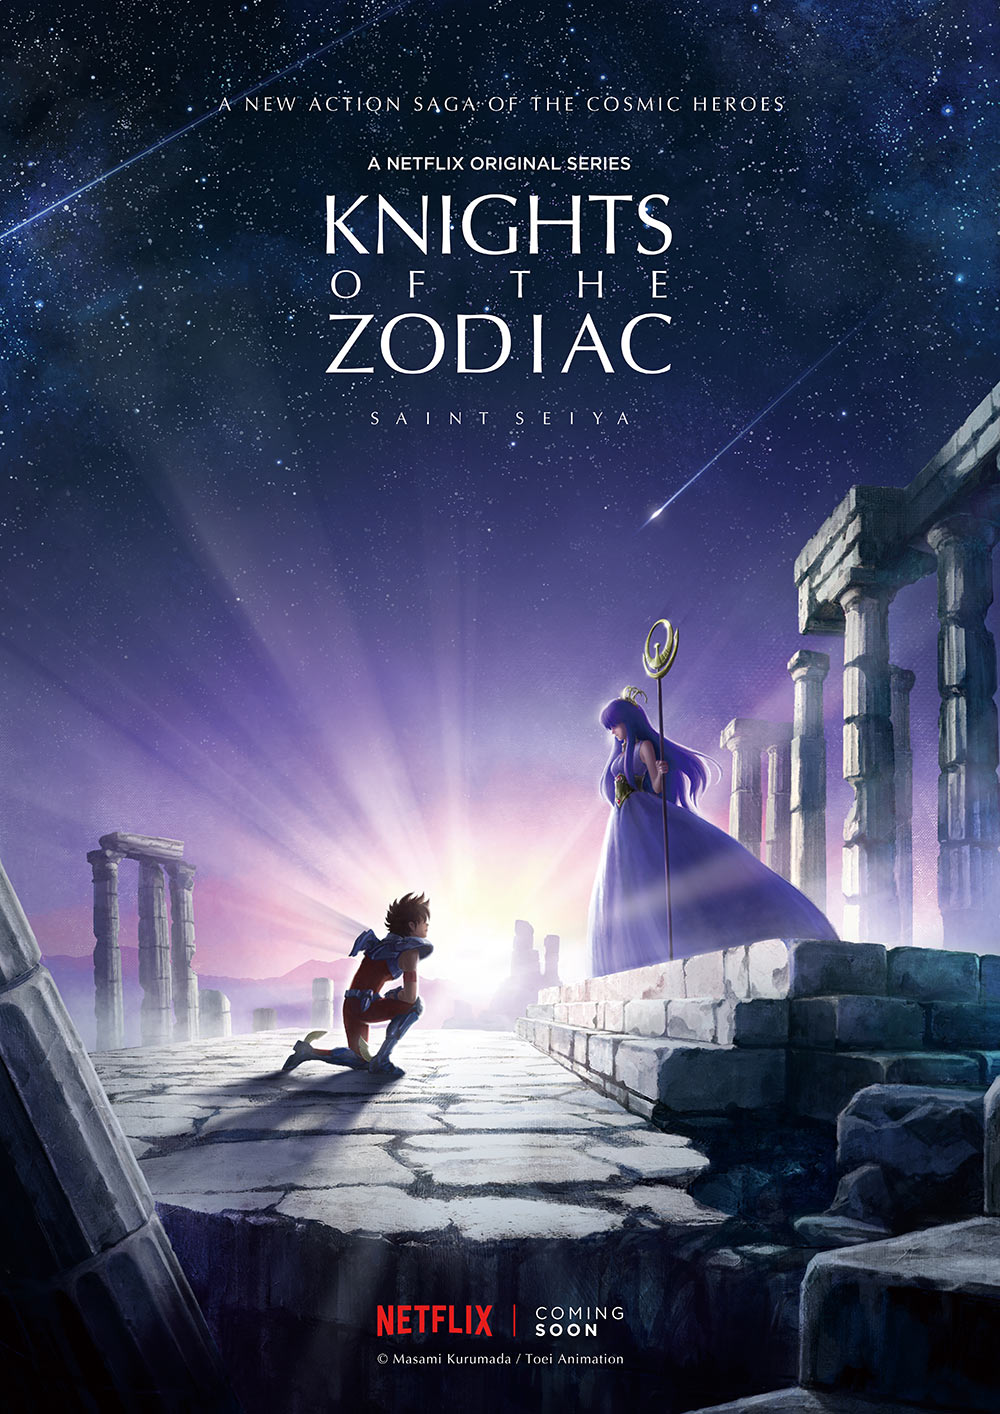 """Knights of the Zodiac: Saint Seiya."""